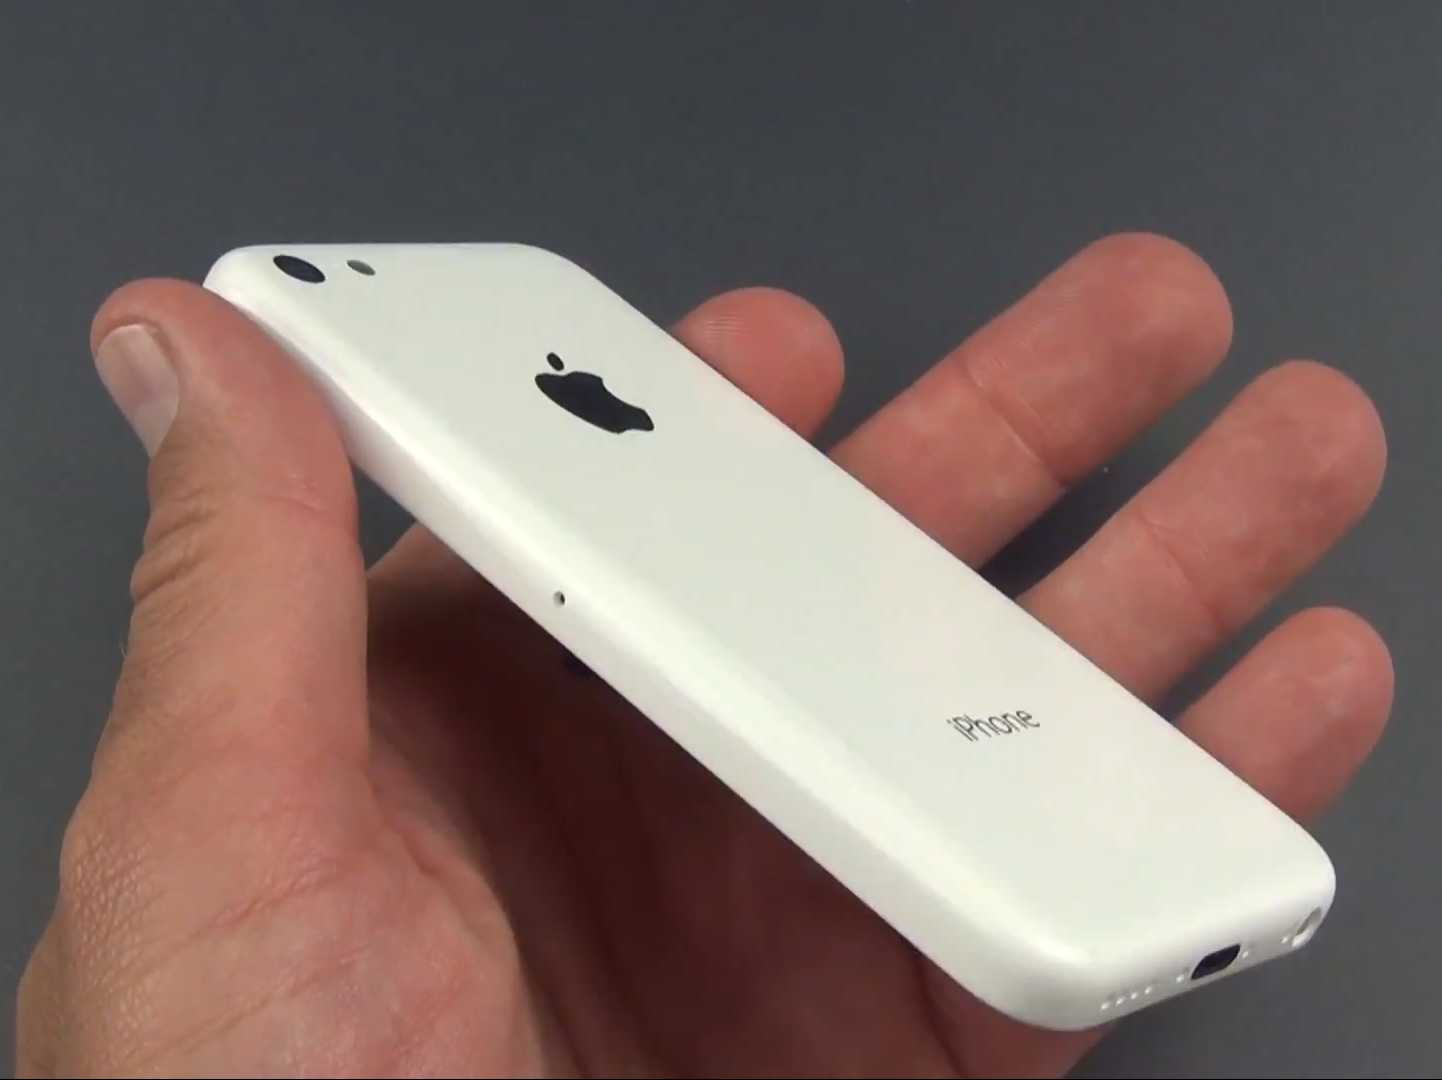 apples-low-cost-iphone-is-going-to-be-called-the-iphone-5c